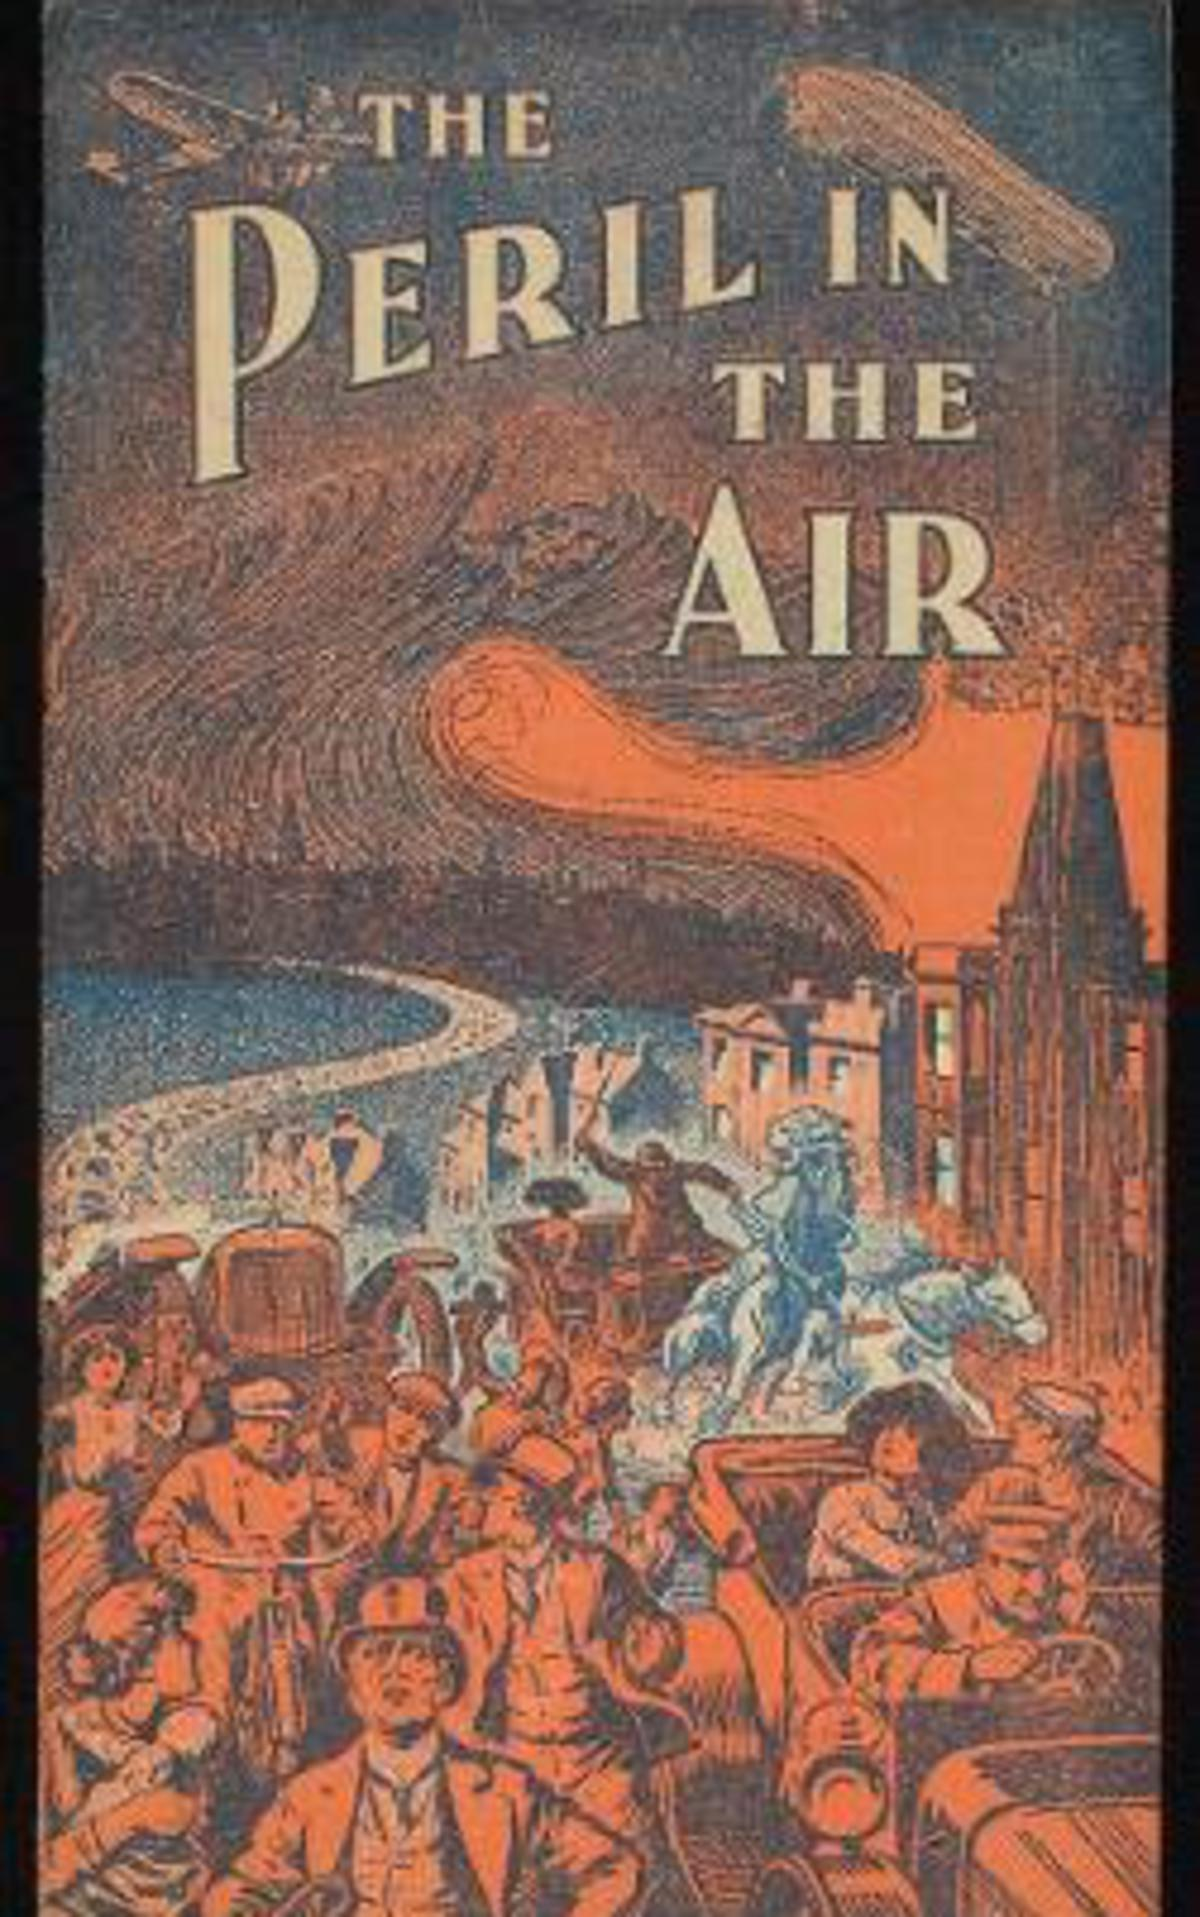 'The Peril in the Air', alarmist medical literature from the 1910s, June 1913